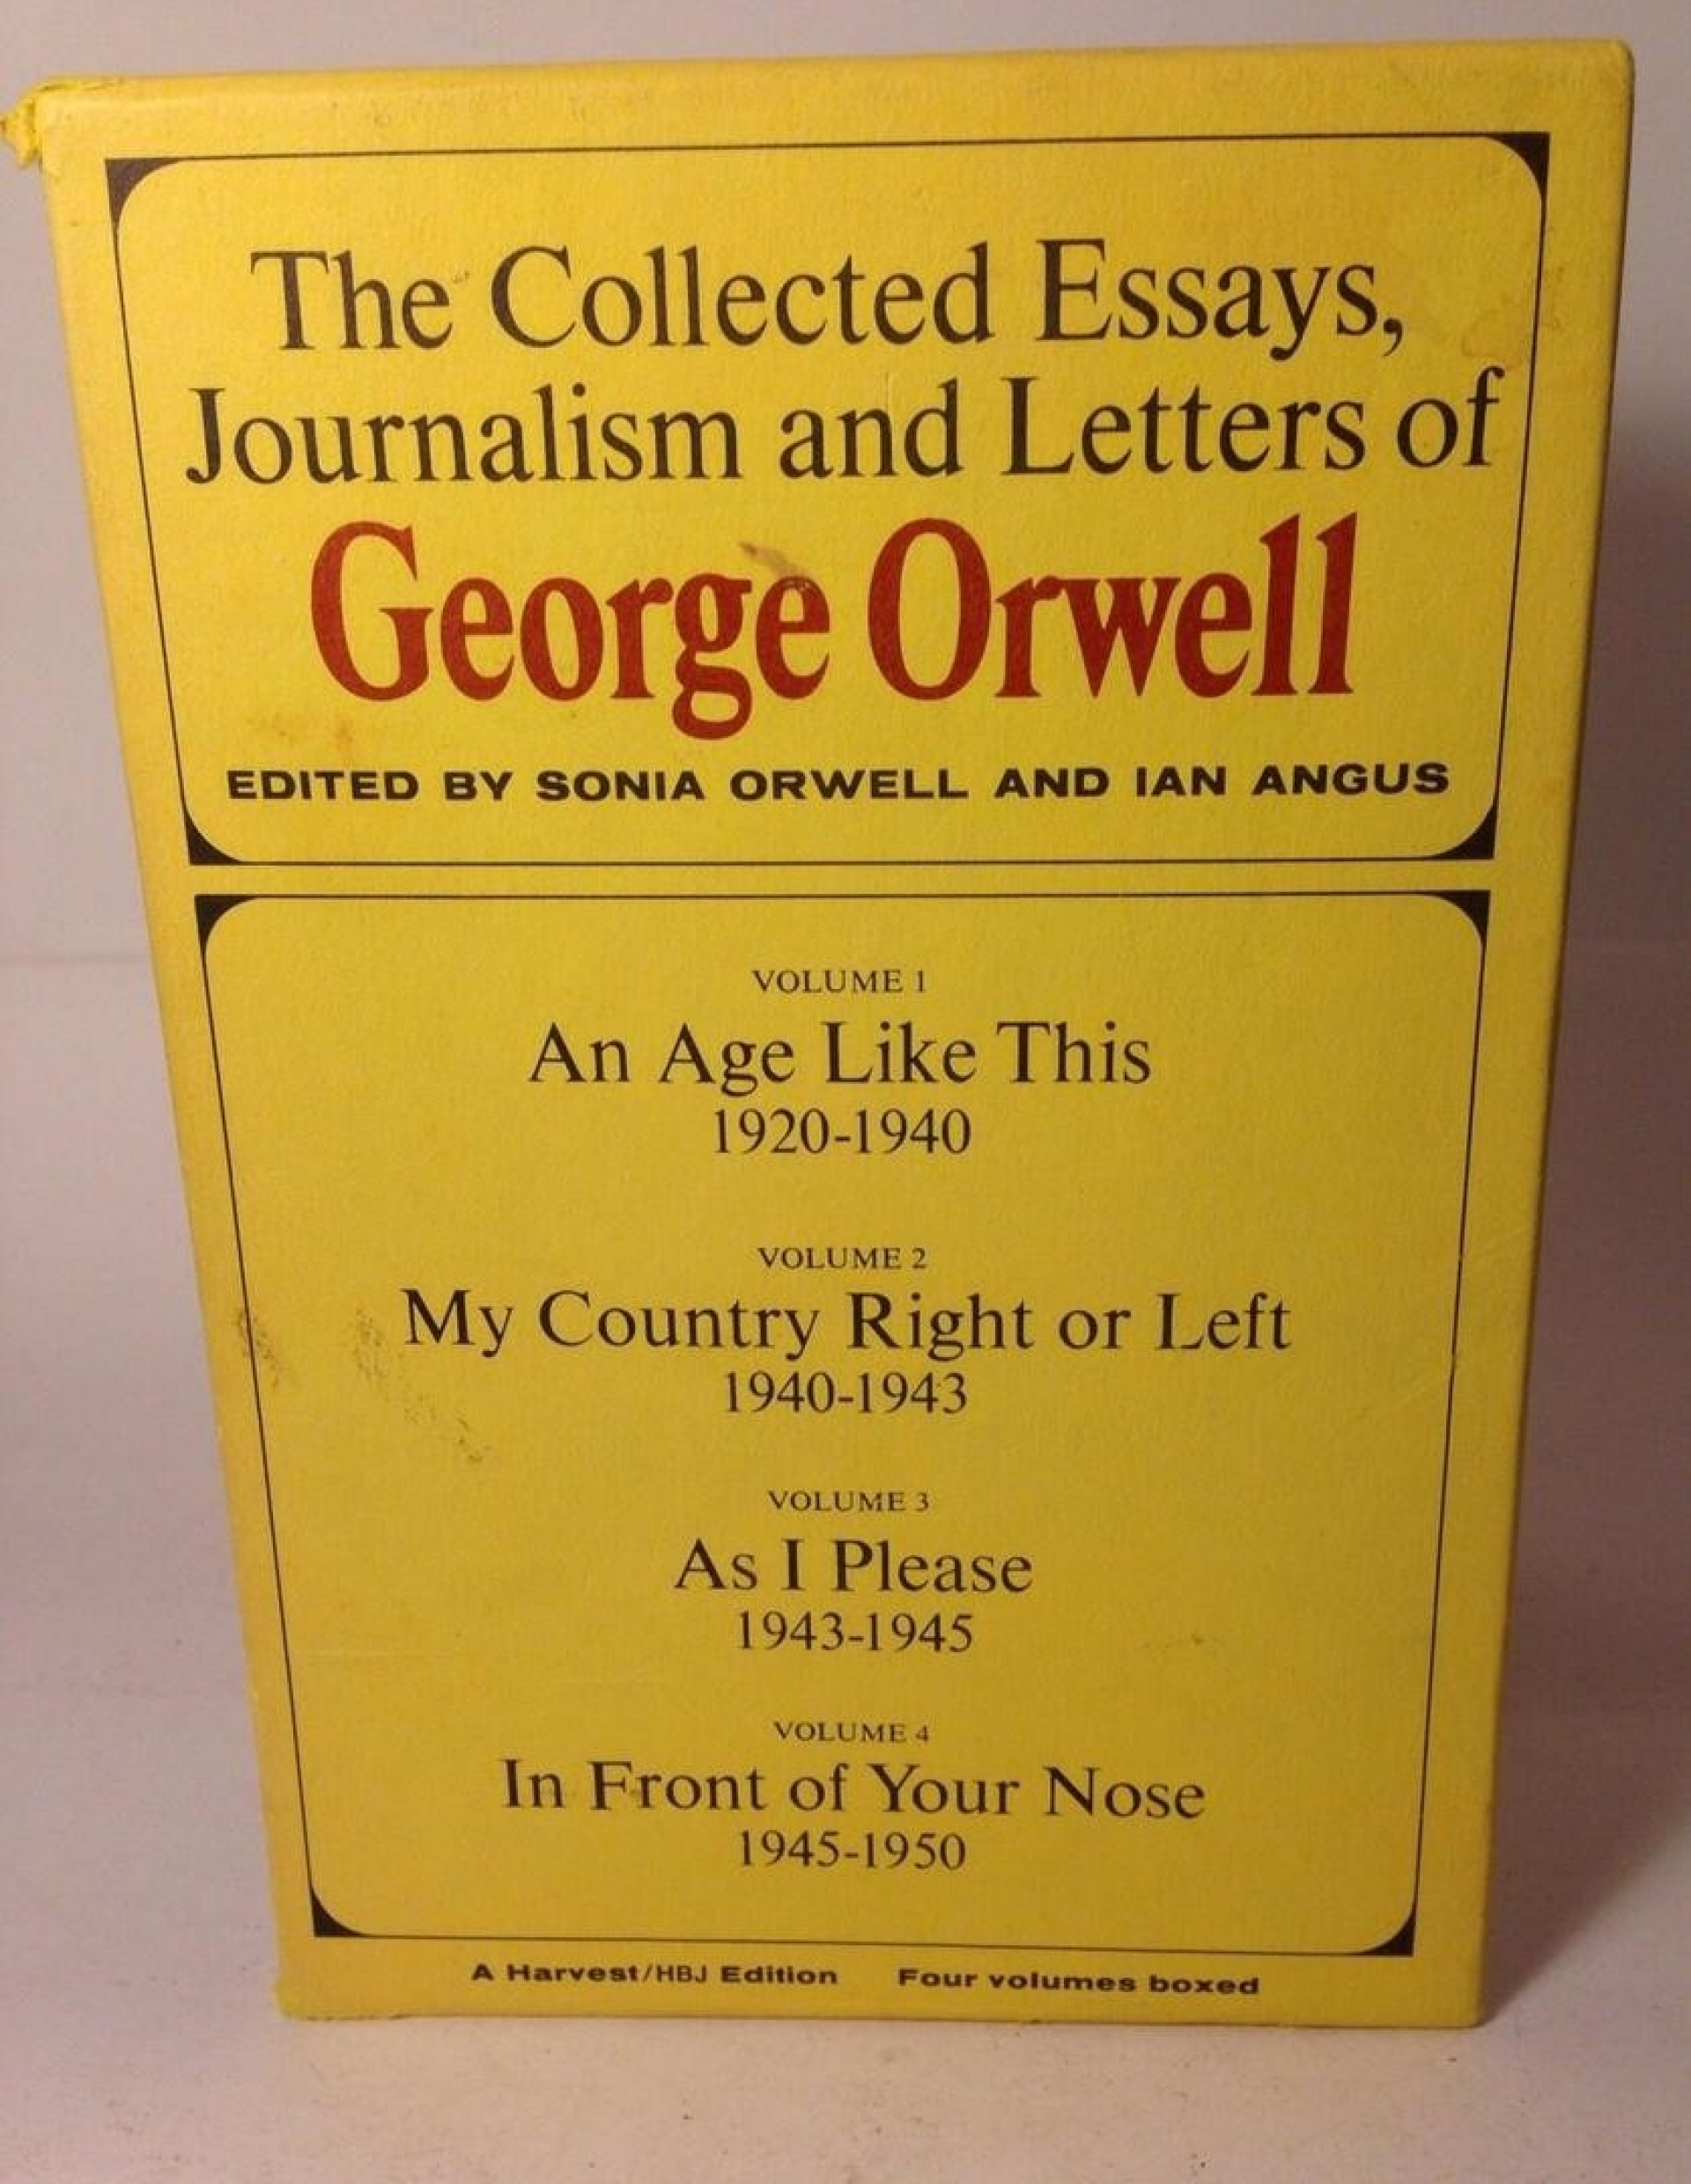 023 Orwell Essays Essay Example Collected Journalism Letters 1 D3543dfe52fc568d792dbe662f9da250 Singular Pdf Themes 1920